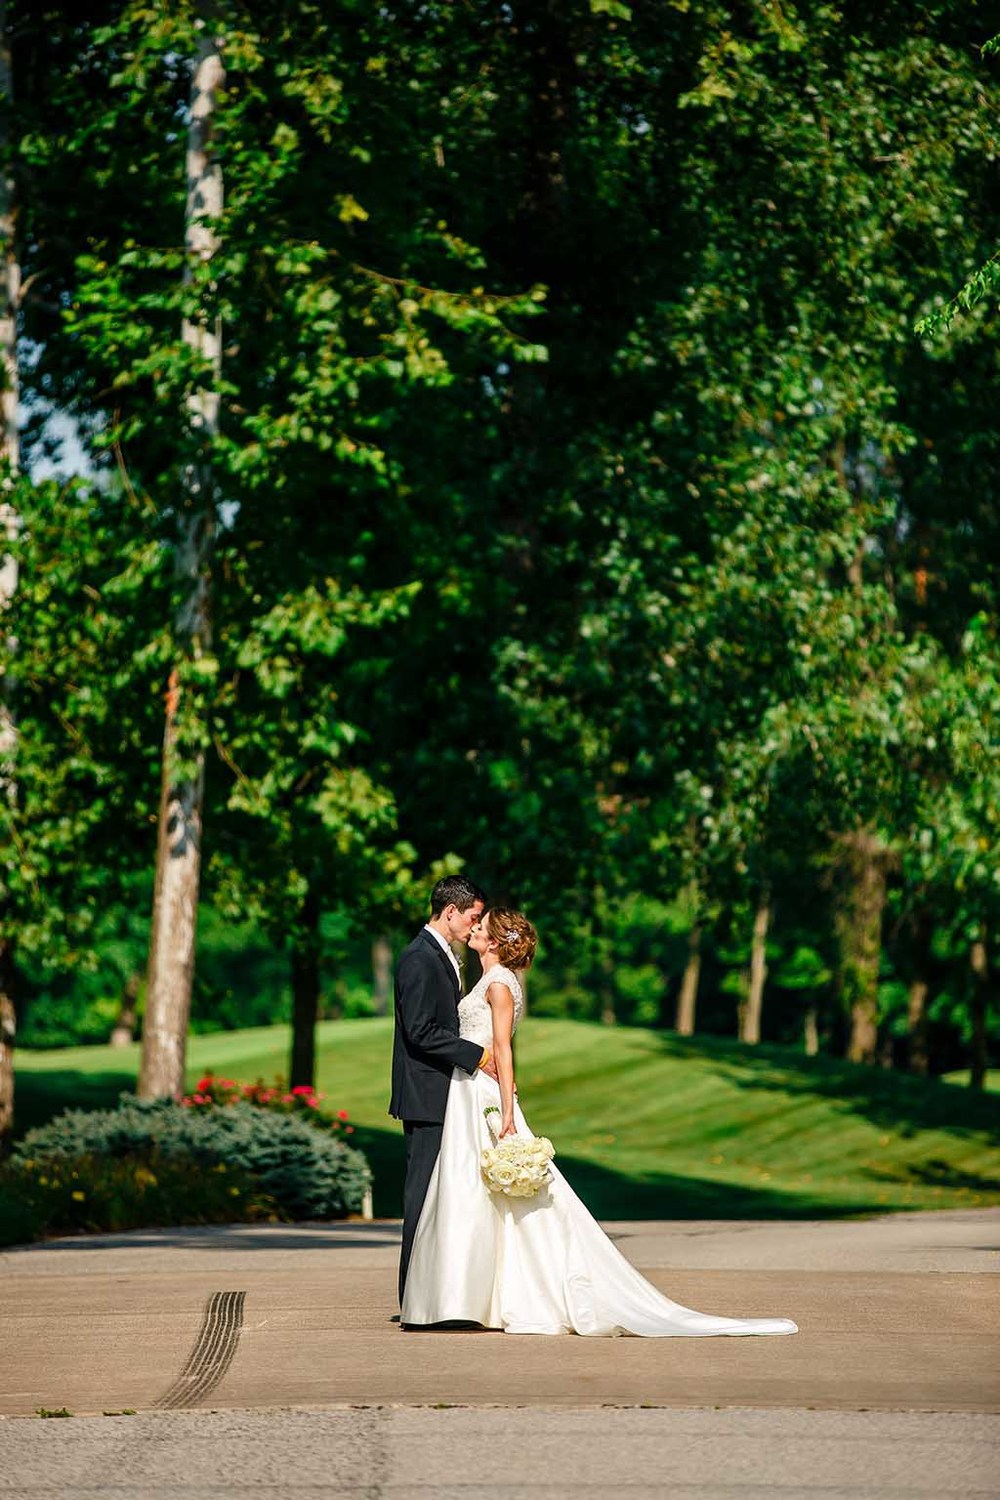 St. Angela Merici / Forest Park / Old Hickory Golf Club Wedding Photos by Oldani Photography St. Louis Wedding Photographers